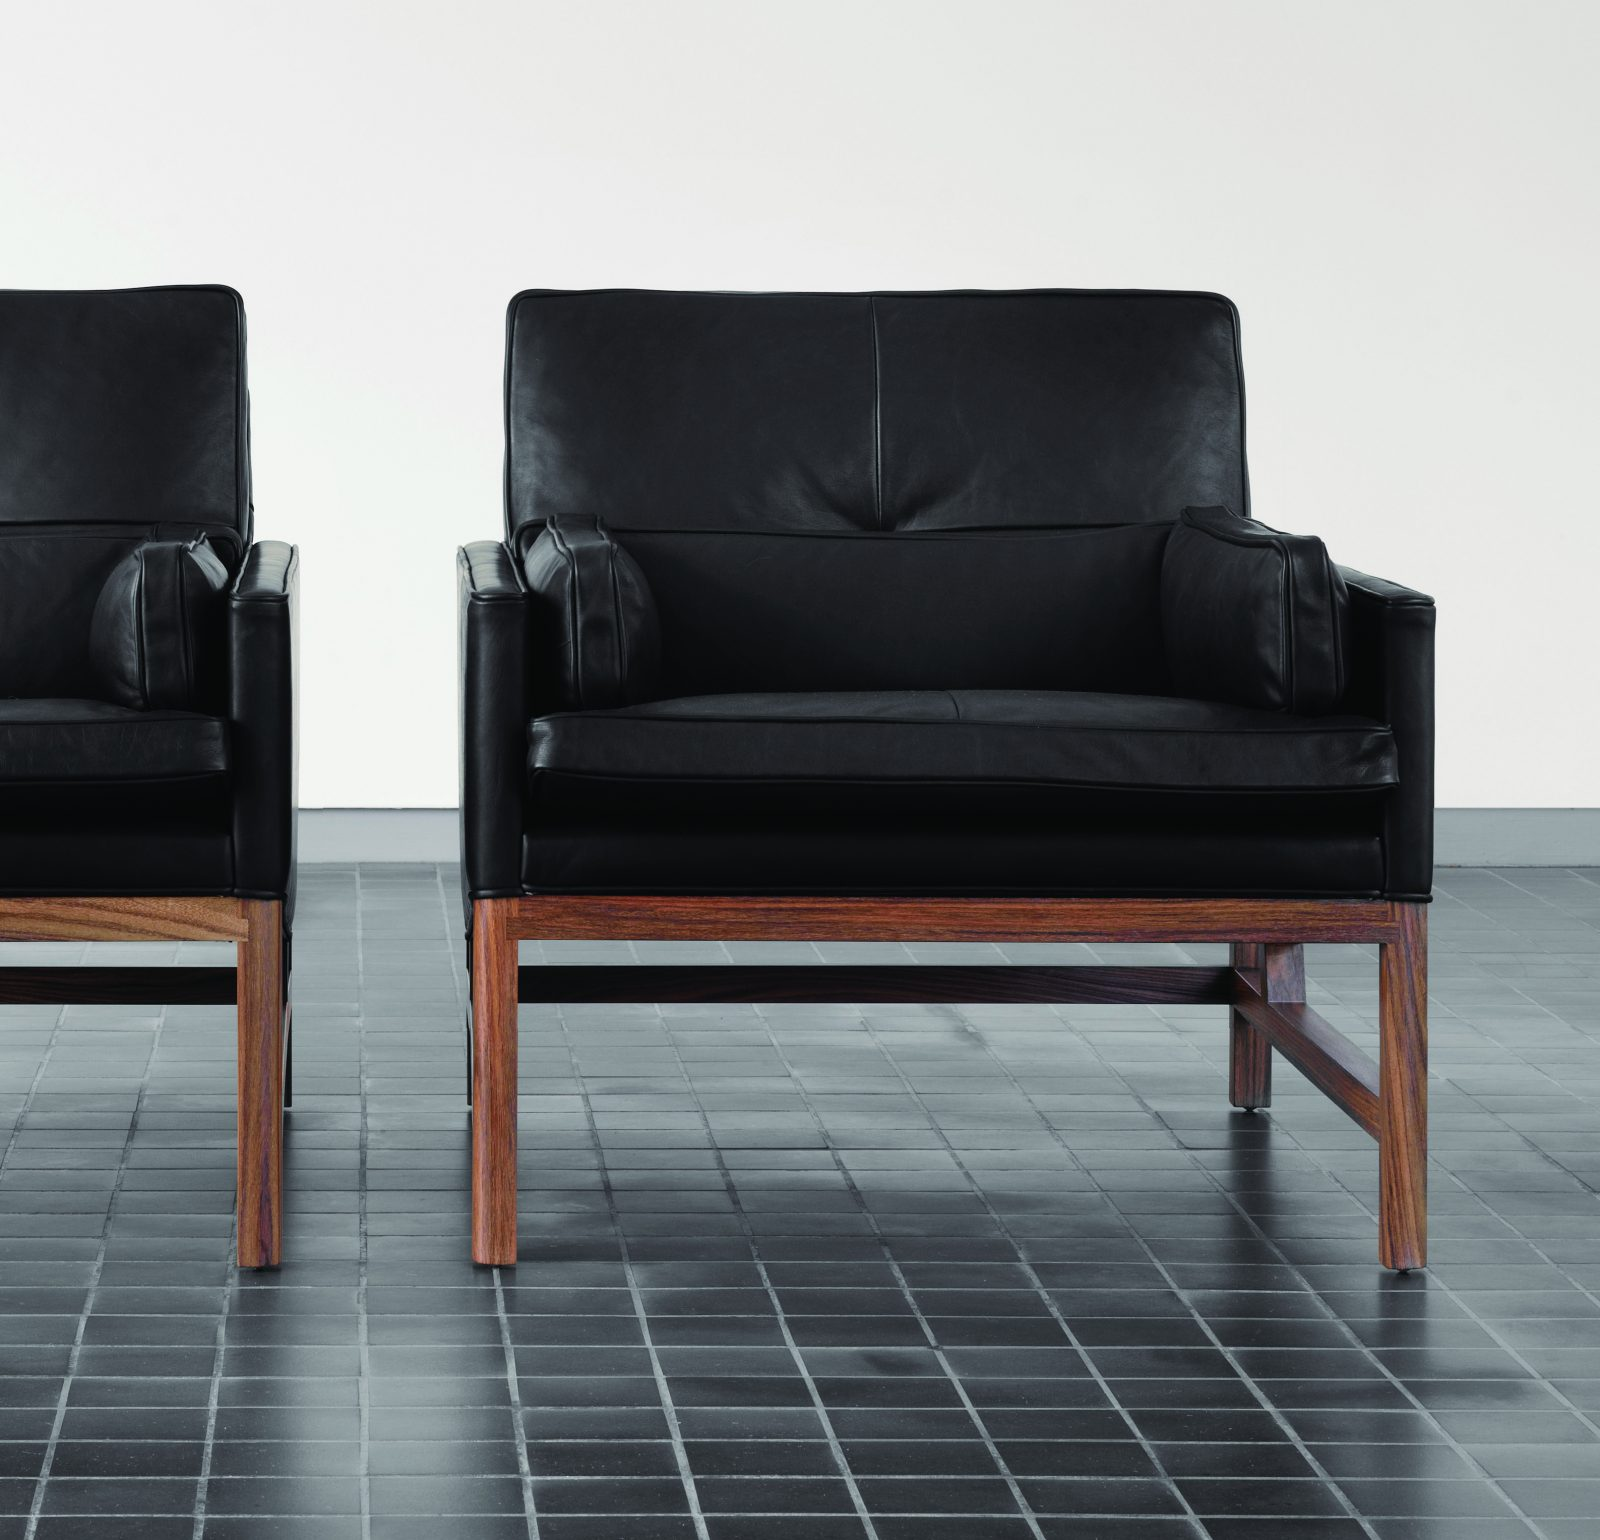 BassamFellows CB-50 Low Back Lounge Chairs with solid Santos Rosewood frame, credit NIKOLAS KOENIG